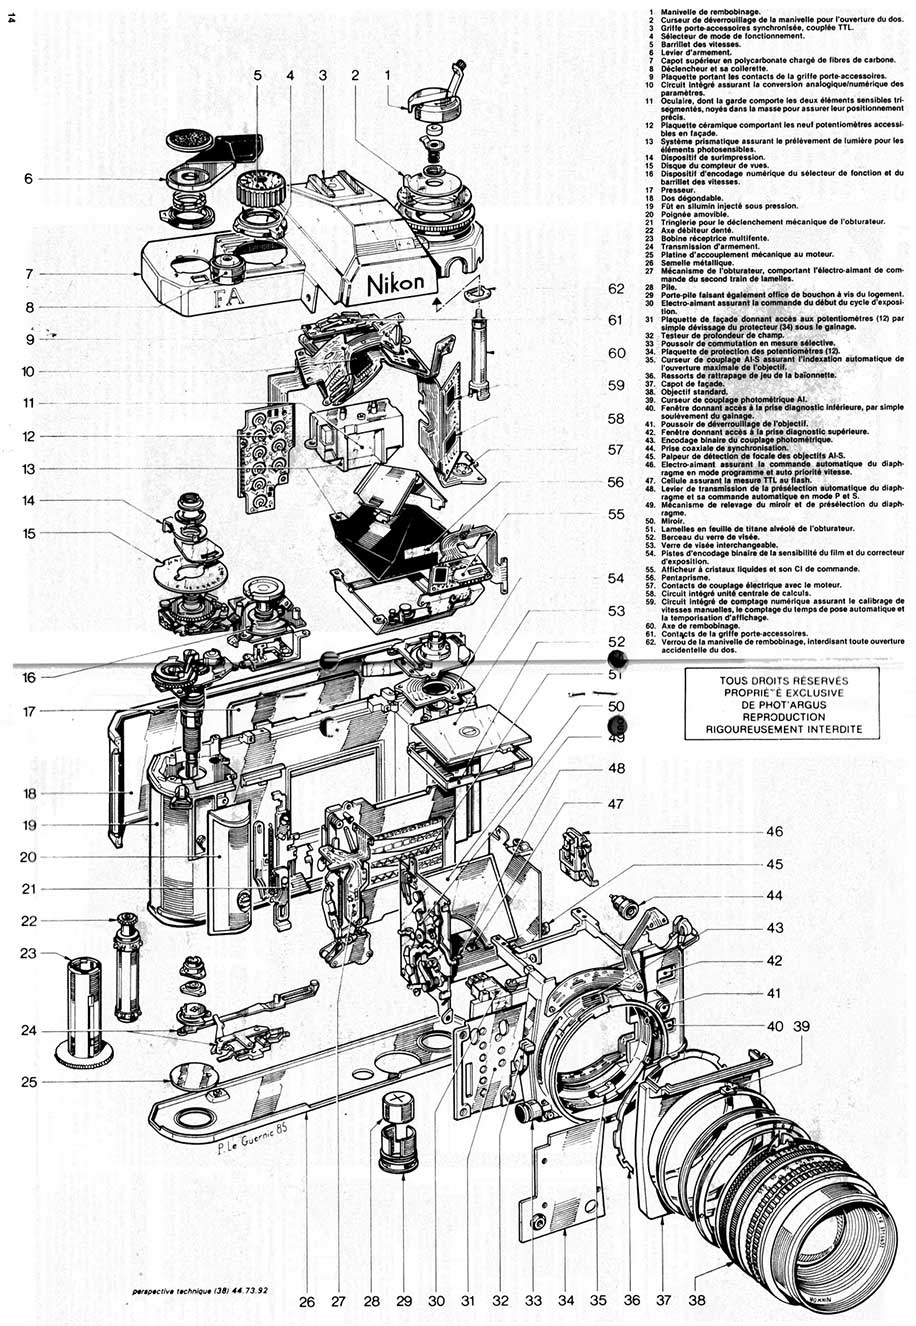 Enjoy The Mechanical Schematics Of Those Old Nikon F Film Cameras moreover 1503500 additionally Exploded View Results as well P229 35188 also J 22 36746. on exploded view results